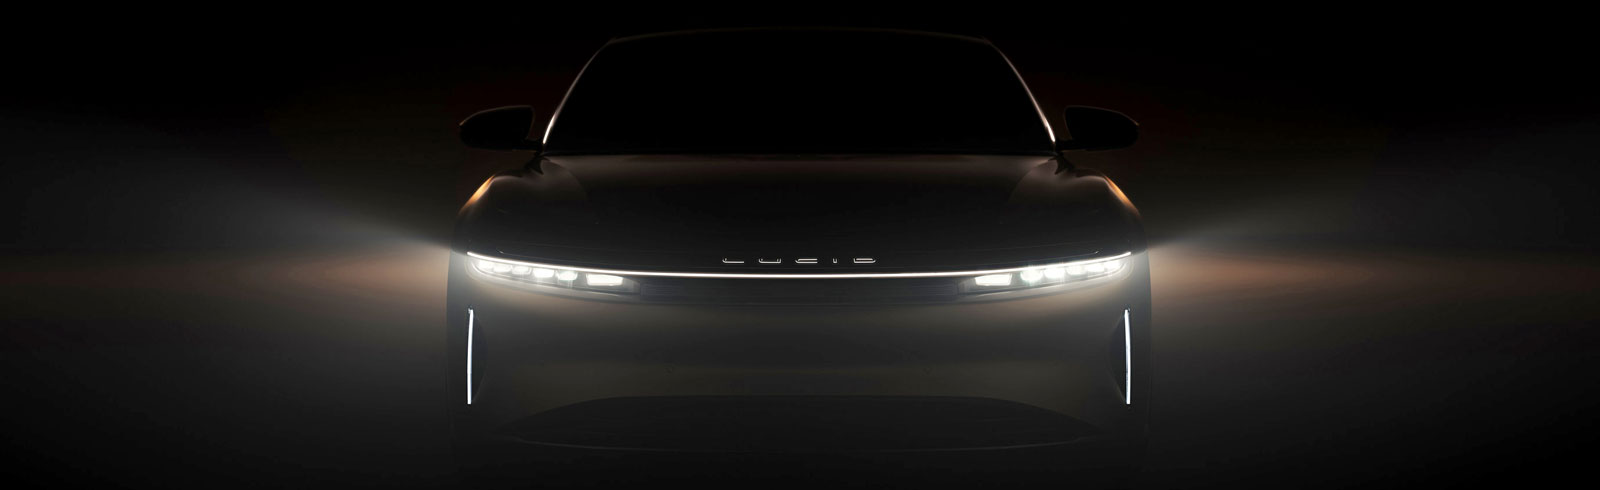 Lucid Motors teases the Lucid Air in a new video